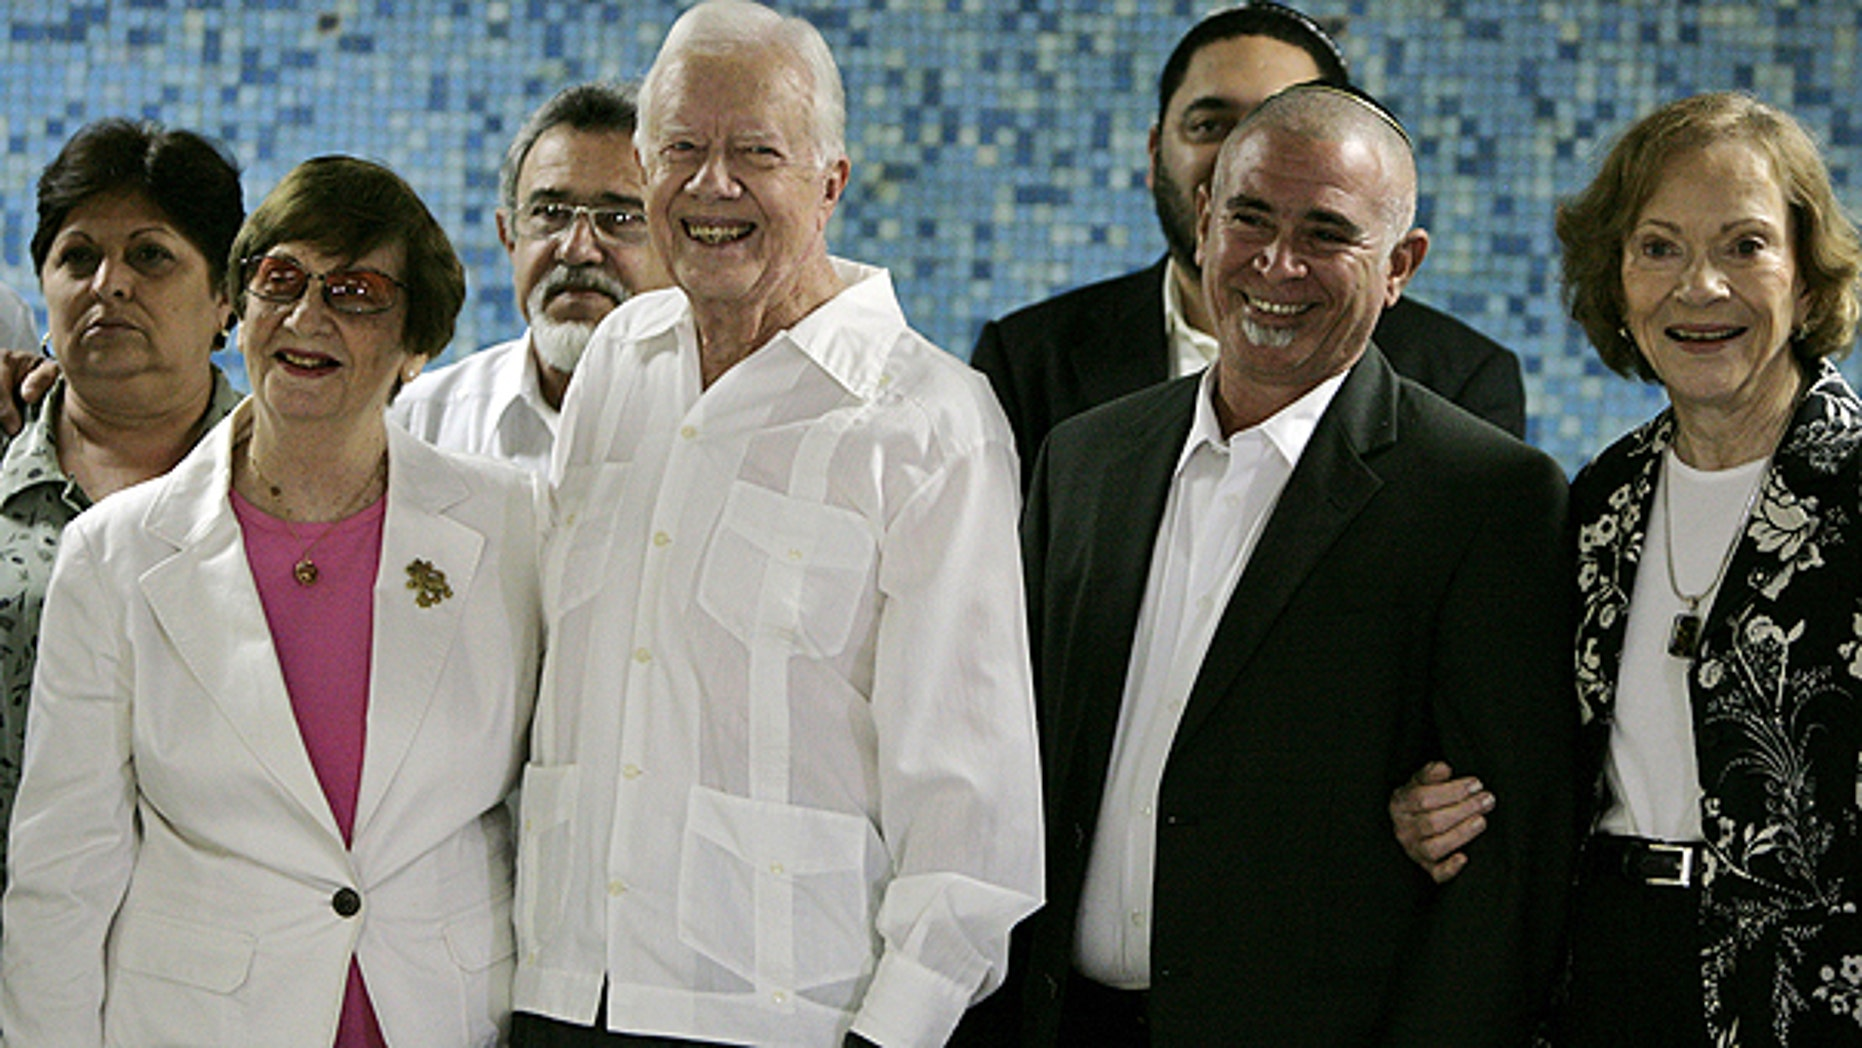 March 28: Authorities, front row, from left, Adela Dworin, President of the Cuban Jewish Community, former President Jimmy Carter, David Prinstein, Vice-President of the Cuban Jewish Community and Carter's wife Rosalynn Carter, pose for pictures during a visit to members of the Cuba Jewish Community in Havana, Cuba.